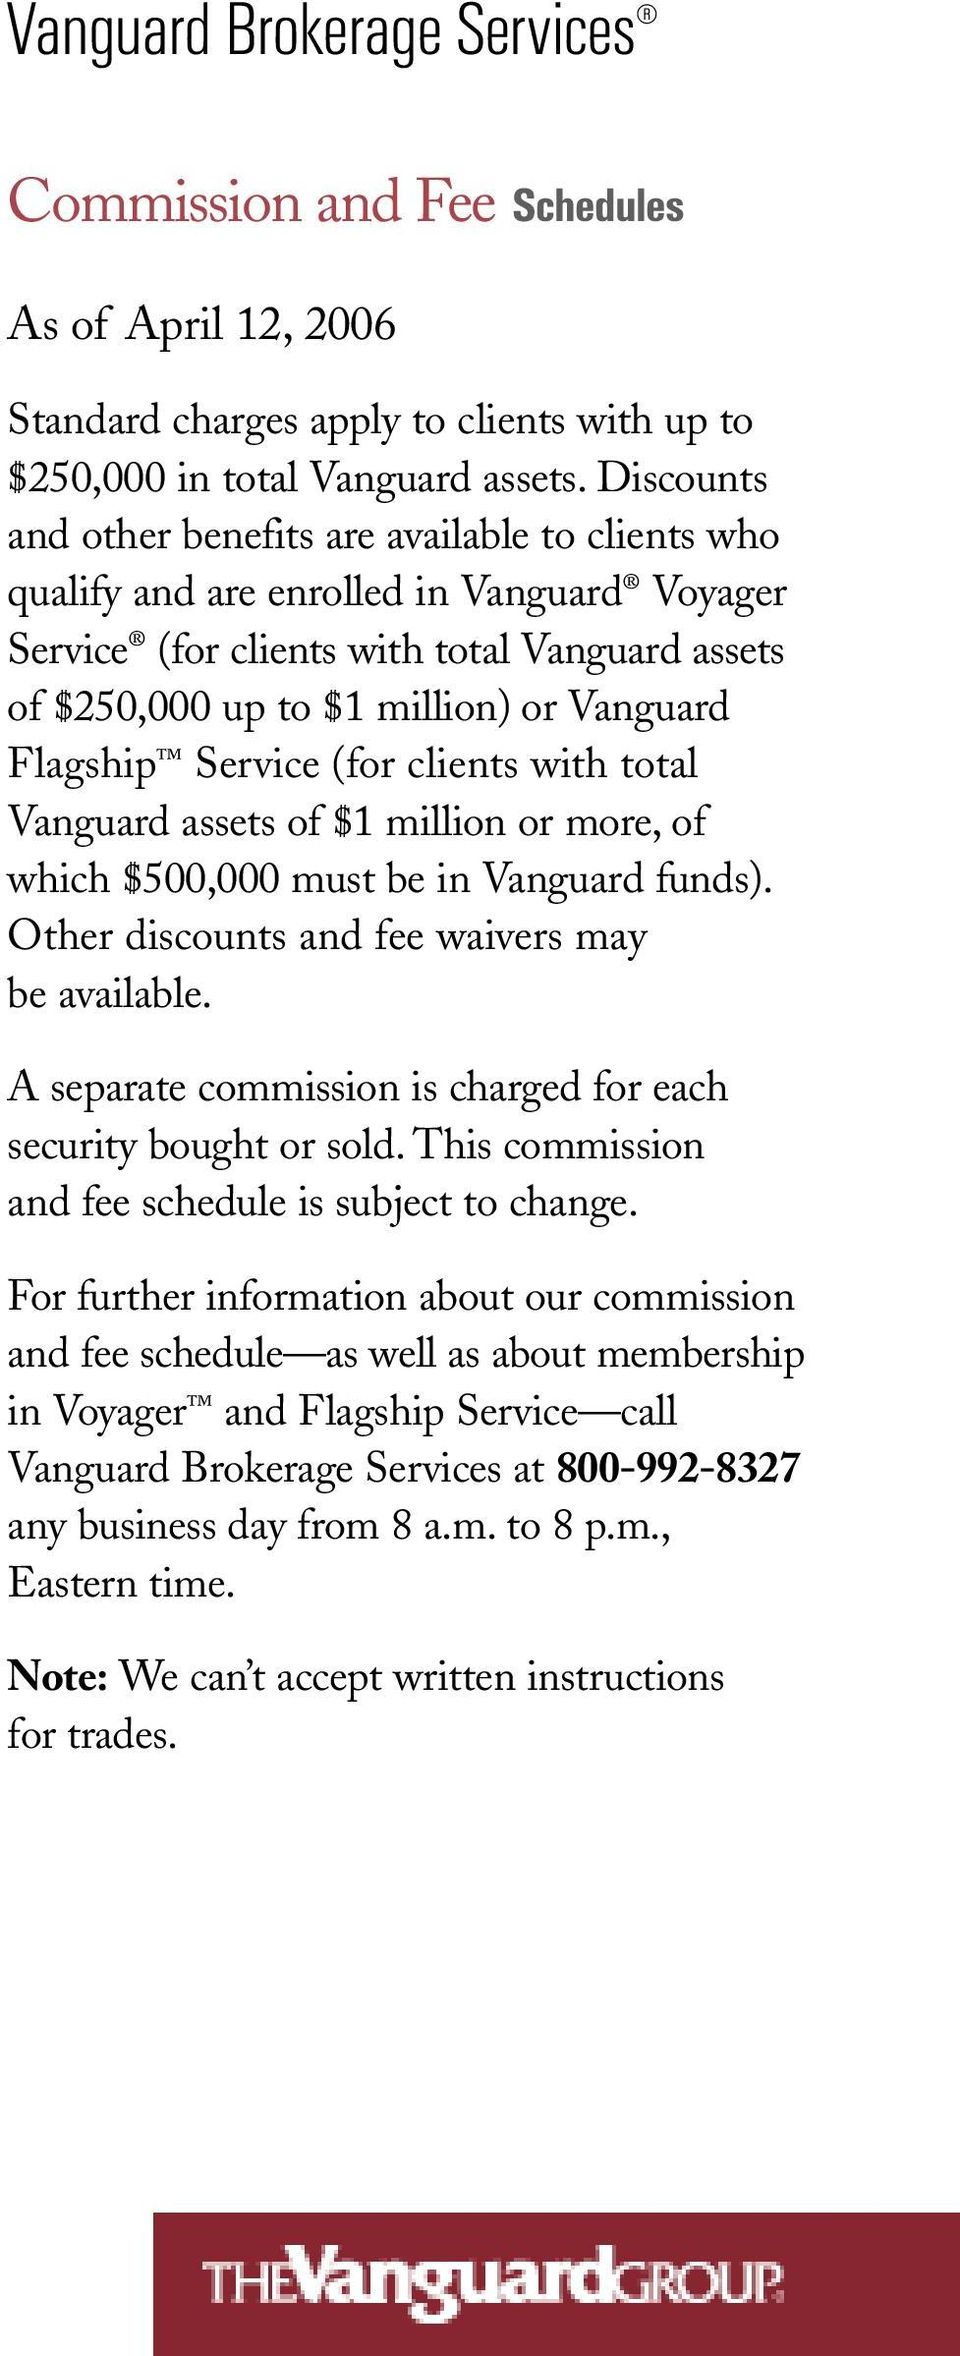 Flagship Service (for clients with total Vanguard assets of $1 million or more, of which $500,000 must be in Vanguard funds). Other discounts and fee waivers may be available.